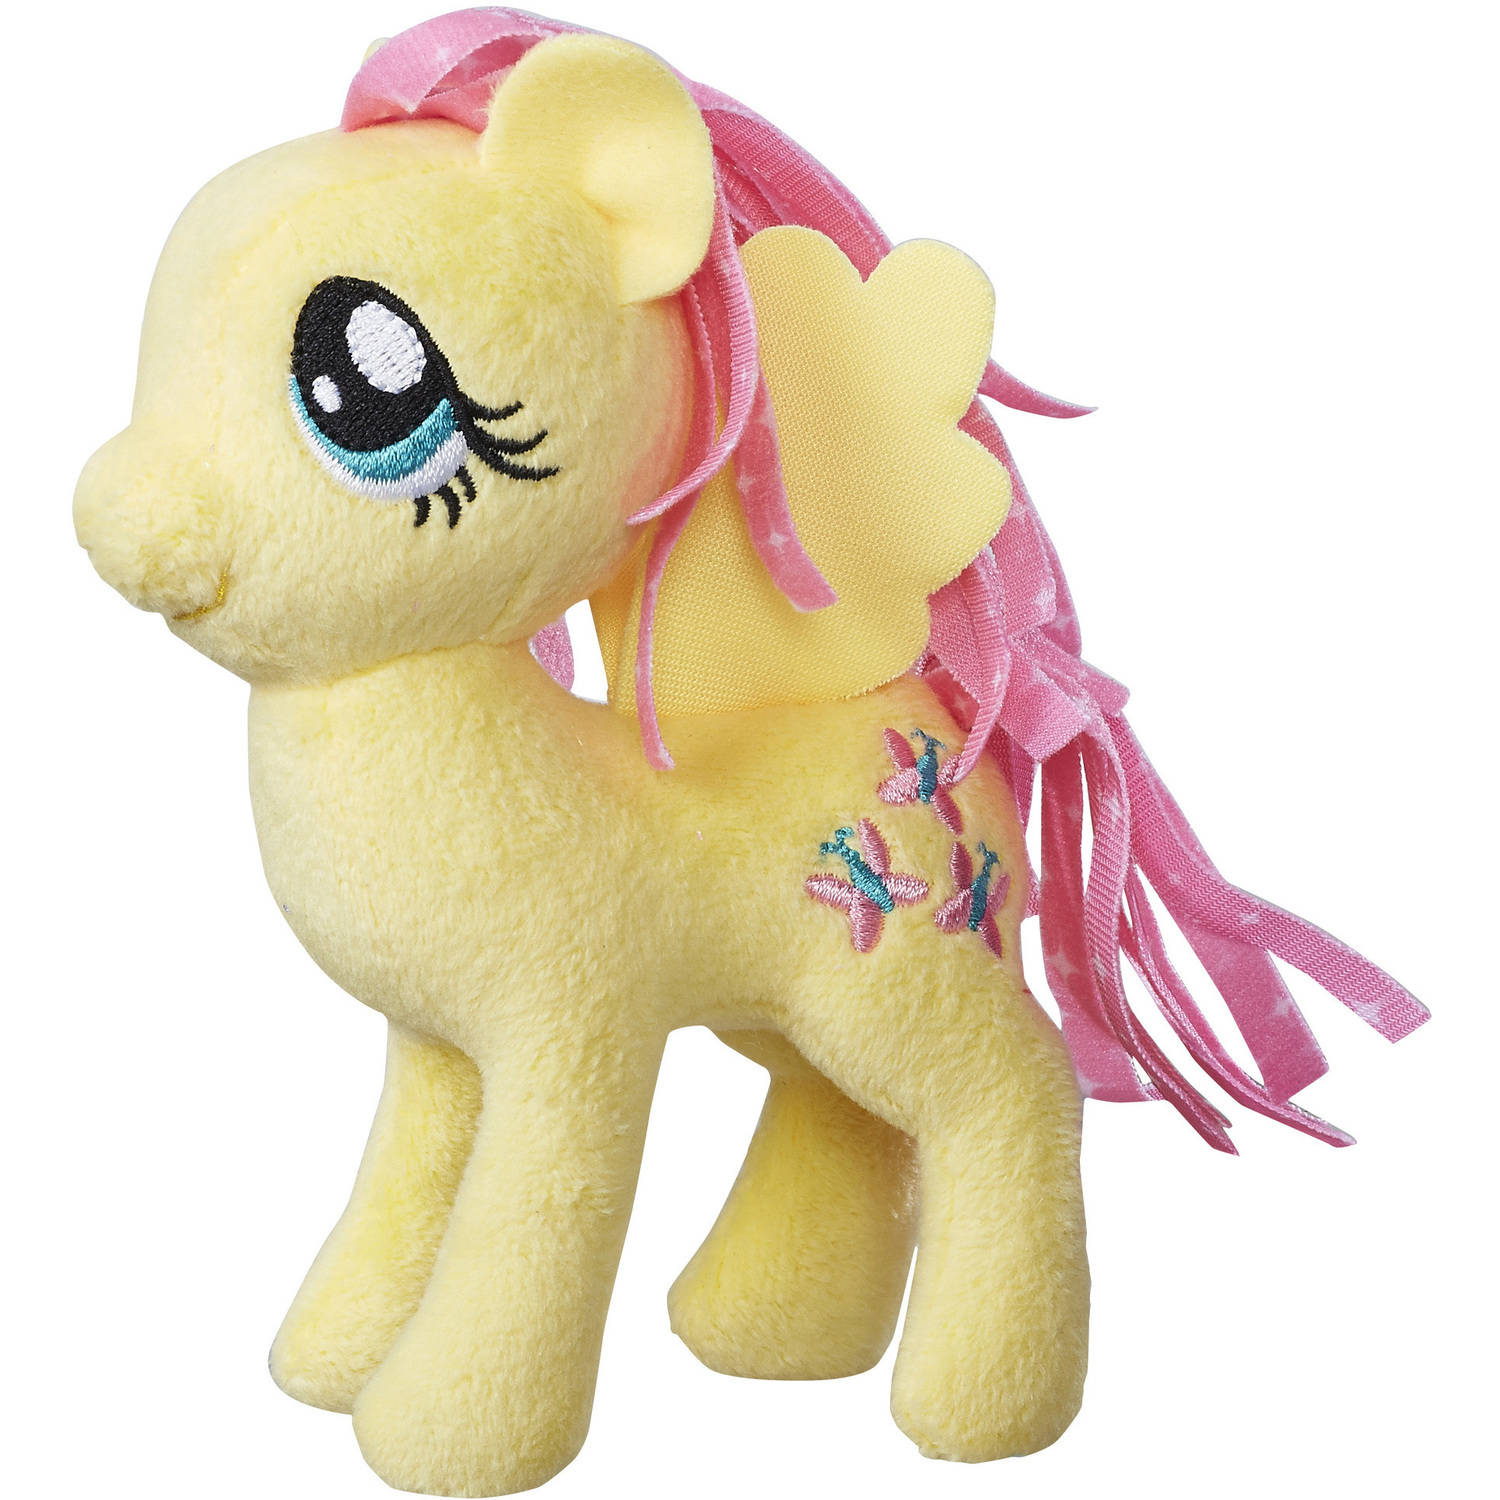 My Little Pony Friendship is Magic Fluttershy Small Plush by